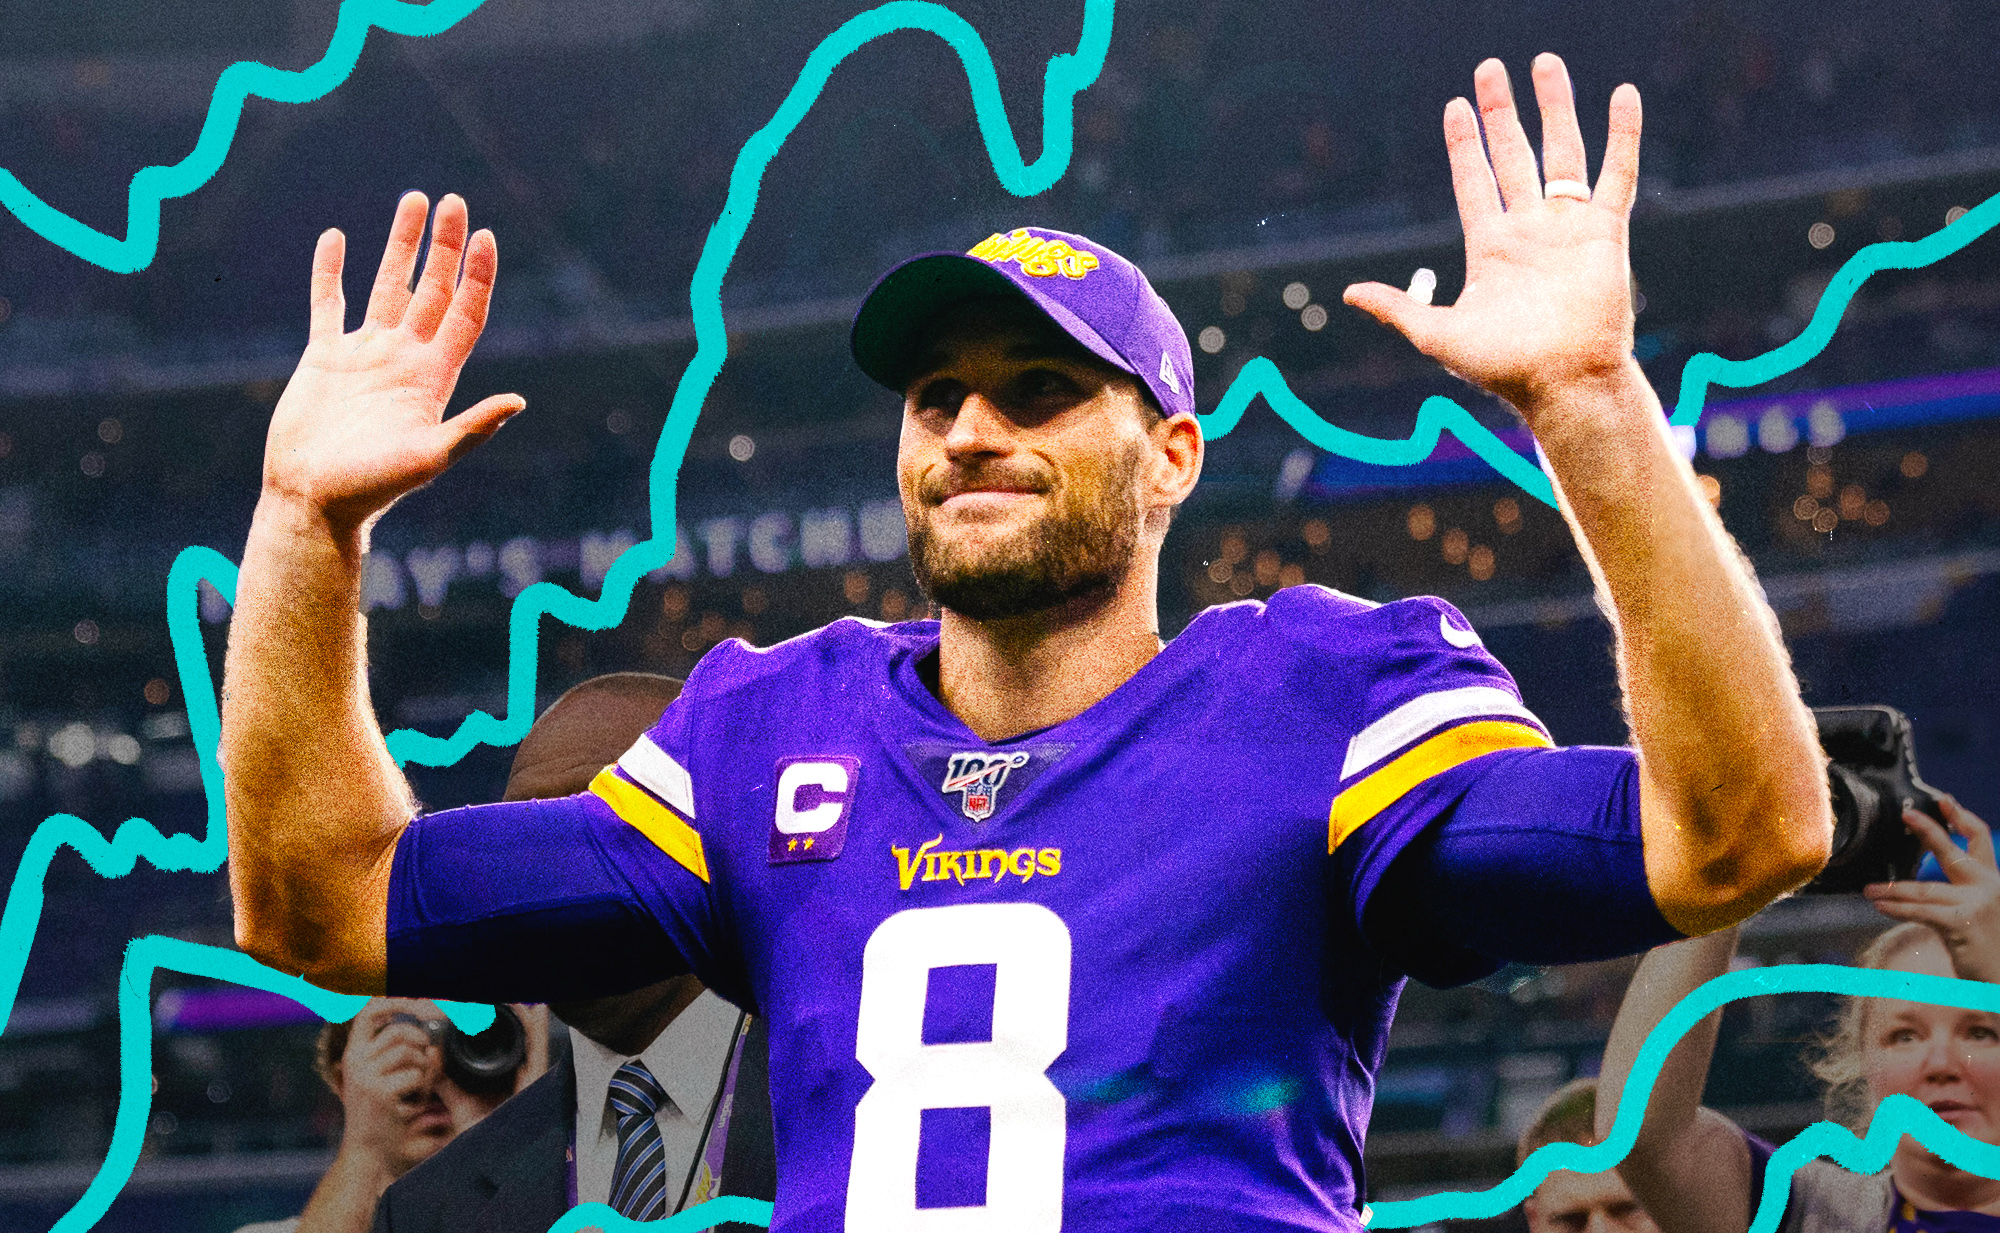 Vikings QB Kirk Cousins holds up both arms and smiles, with illustrations of blue squiggly lines in the background